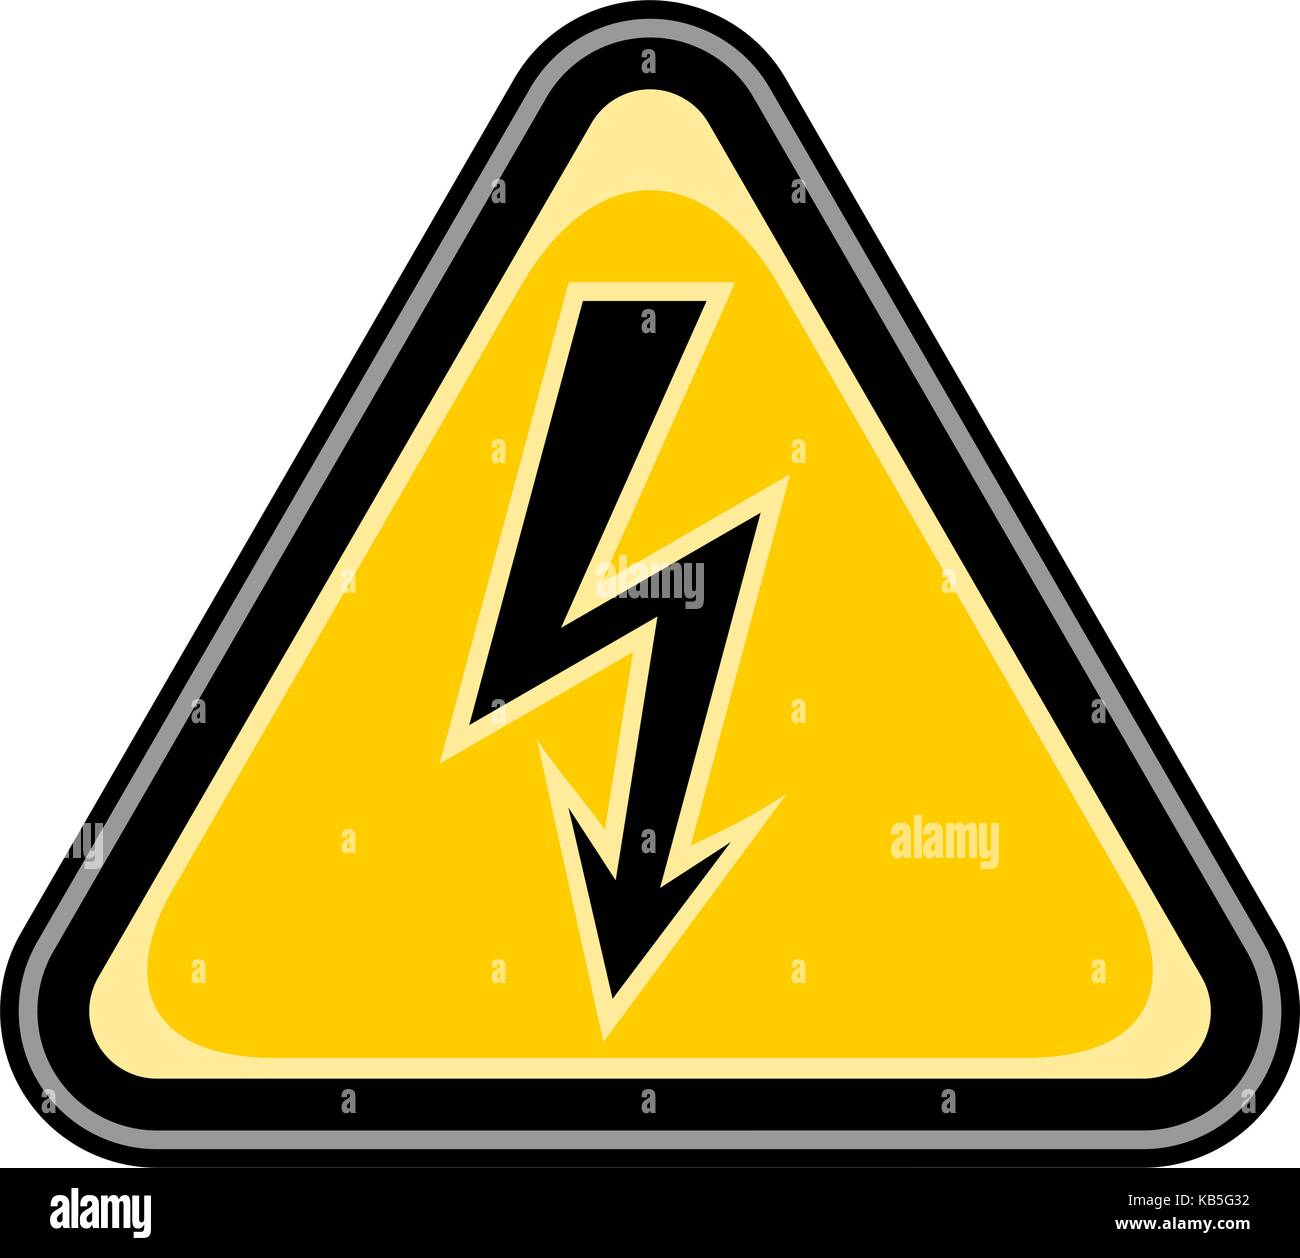 Volts Stock Photos Amp Volts Stock Images Alamy